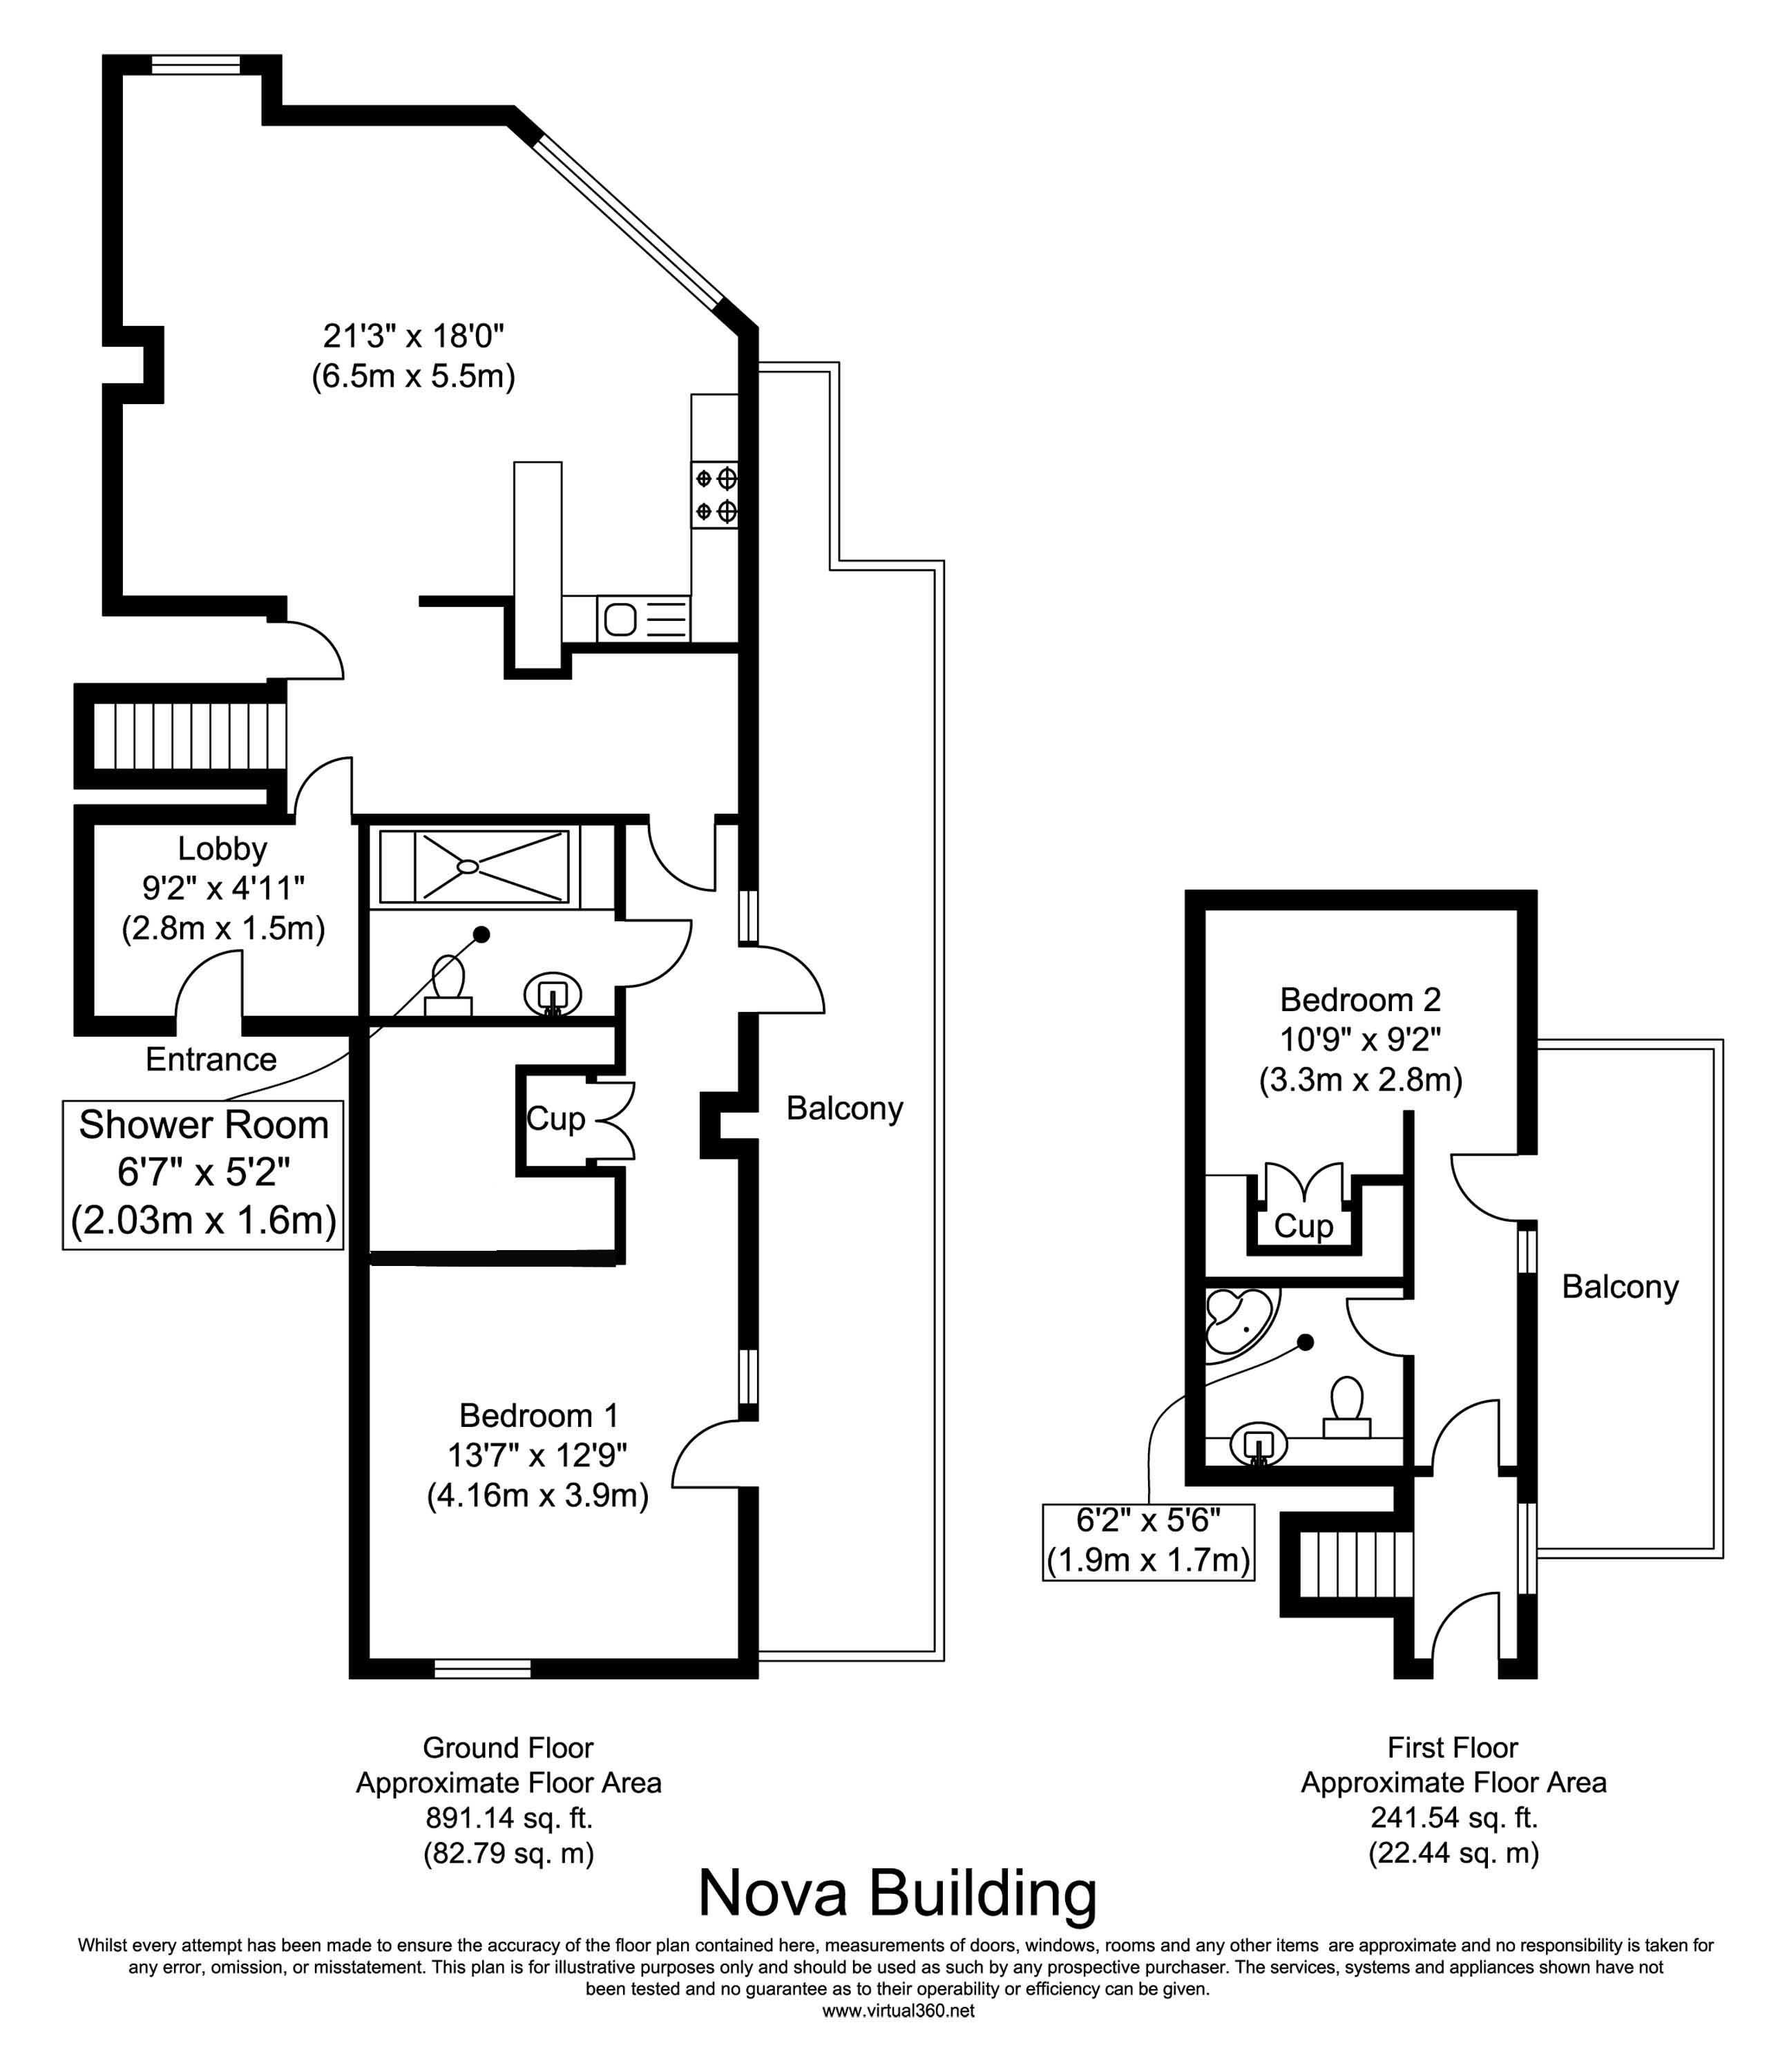 Floorplan for the property 2 bed Apartment for sale in Mint Walk, Croydon, CR0 - 1